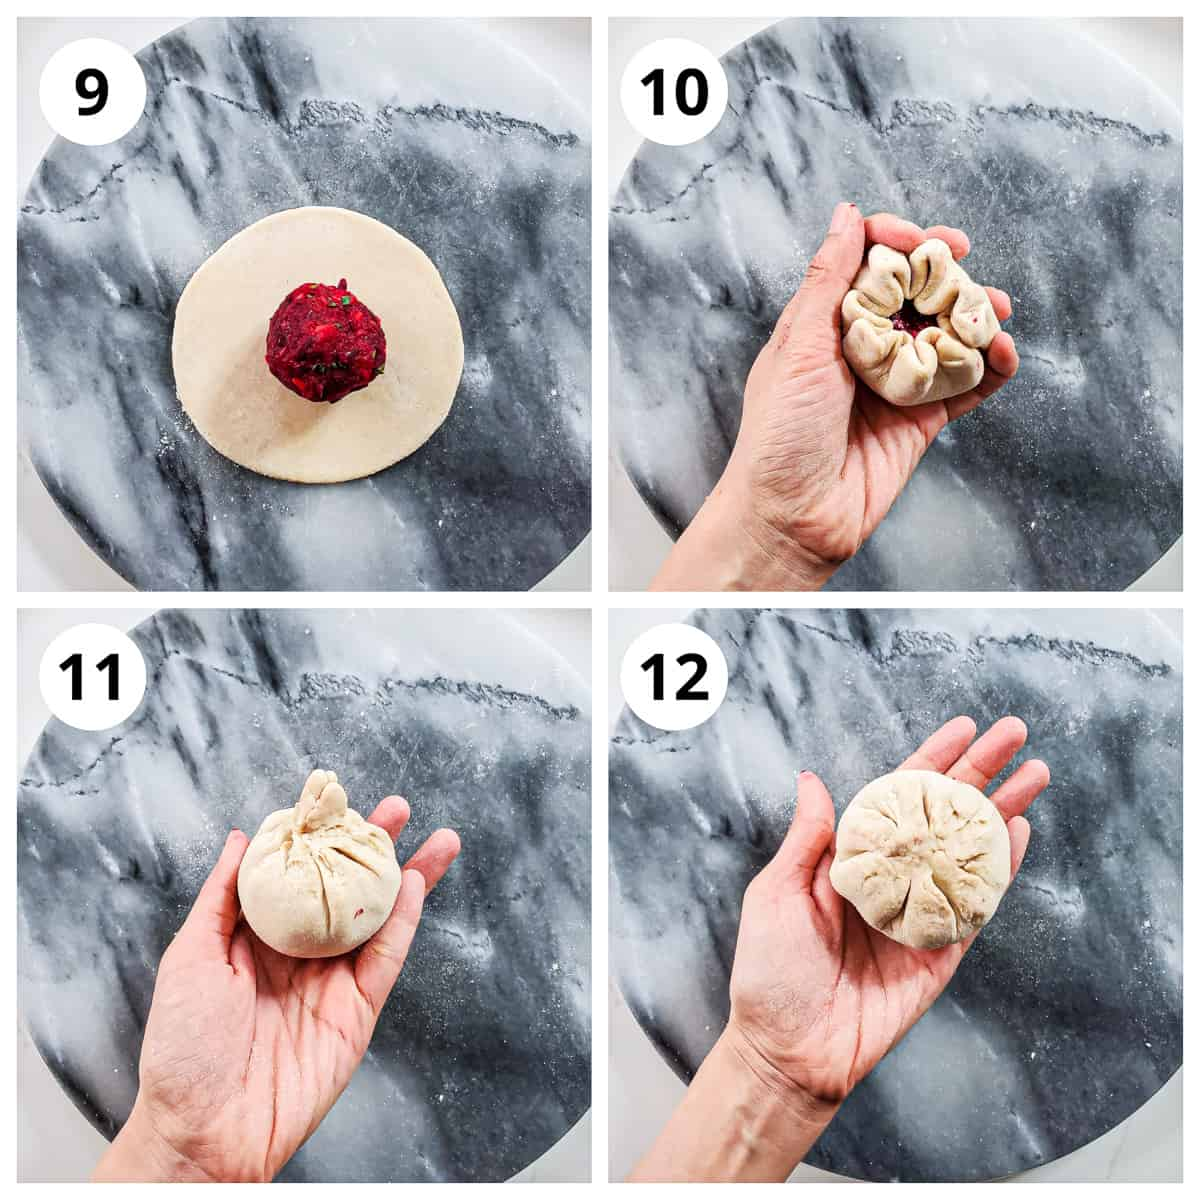 Steps for stuffing the beetroot filling in the dough to make beetroot paratha